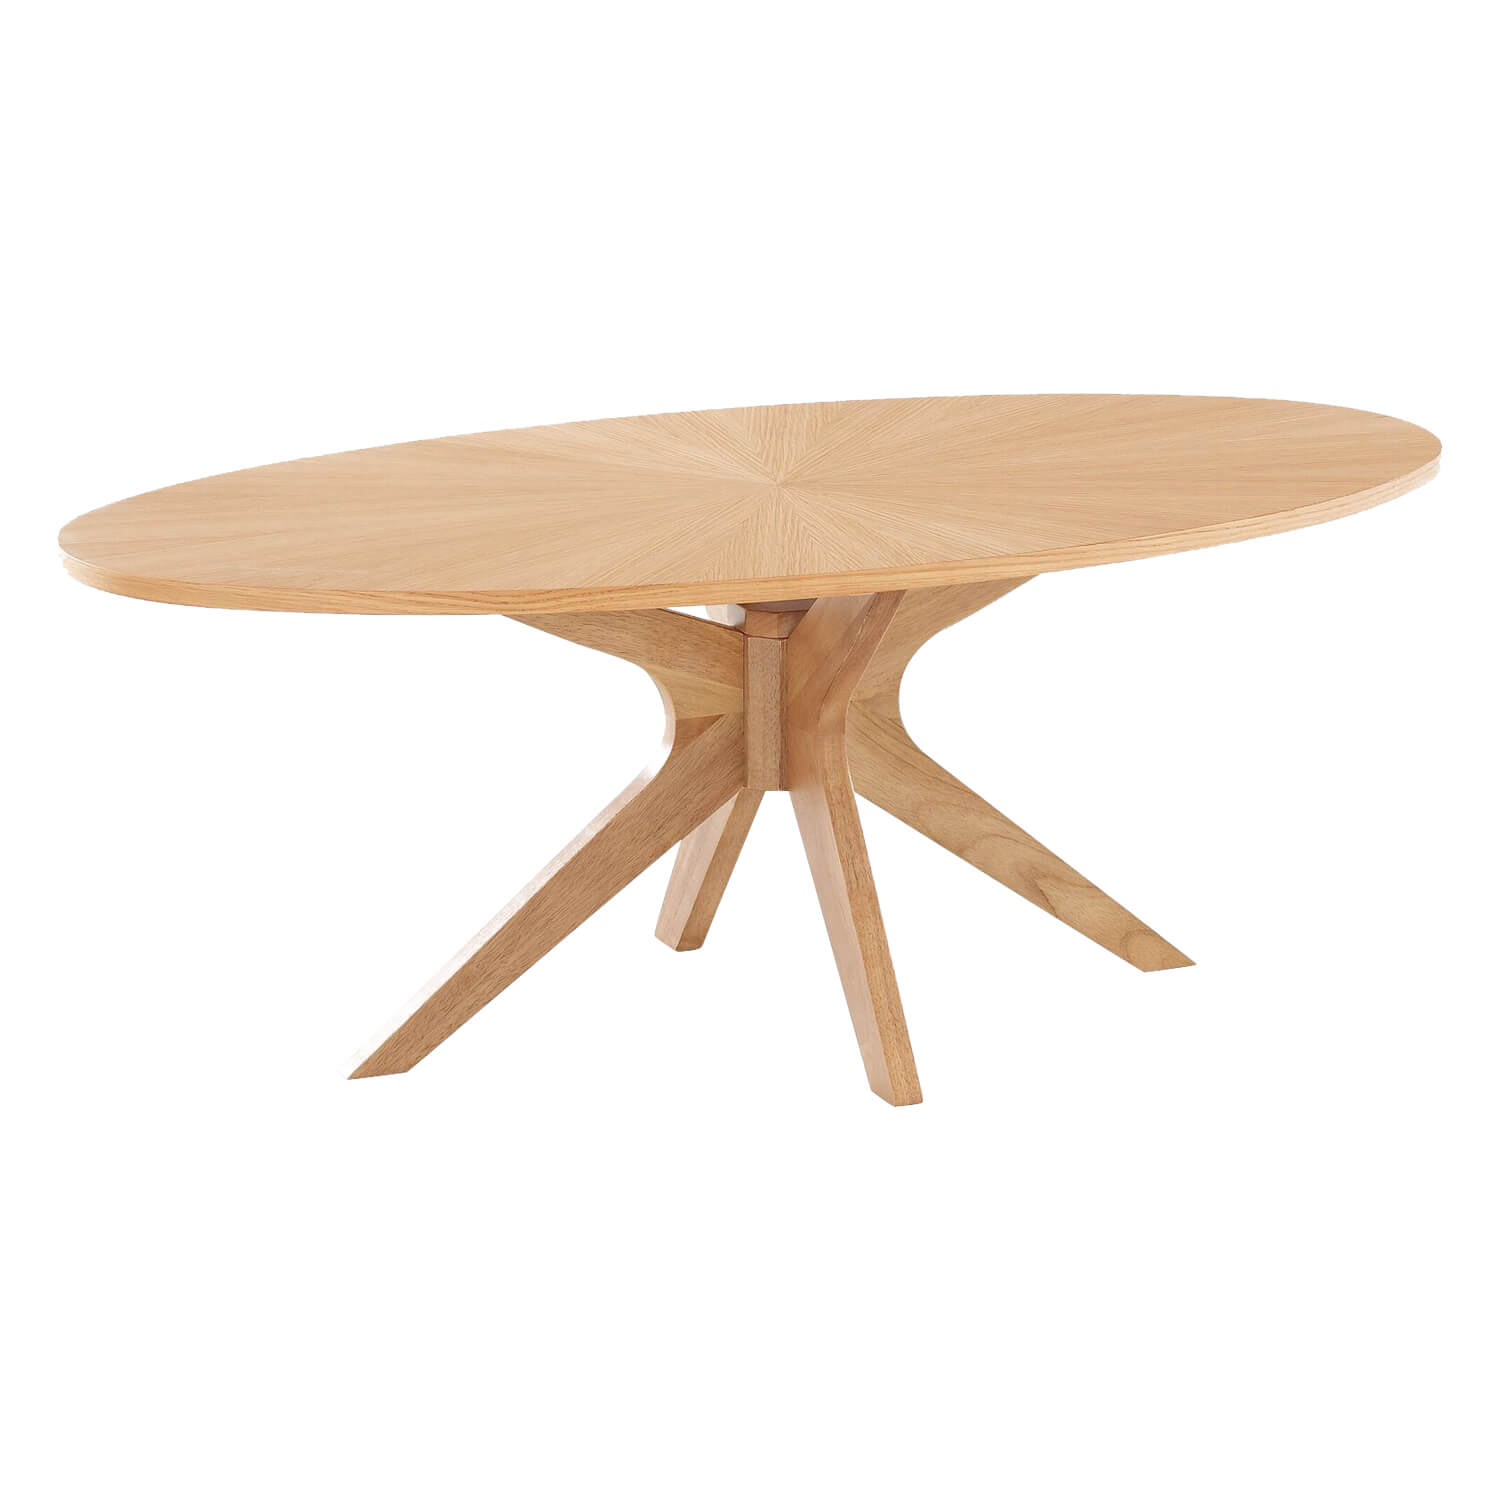 Oval Oak Coffee Table Uk: Solna Oval Solid White Oak Veneer Coffee Table